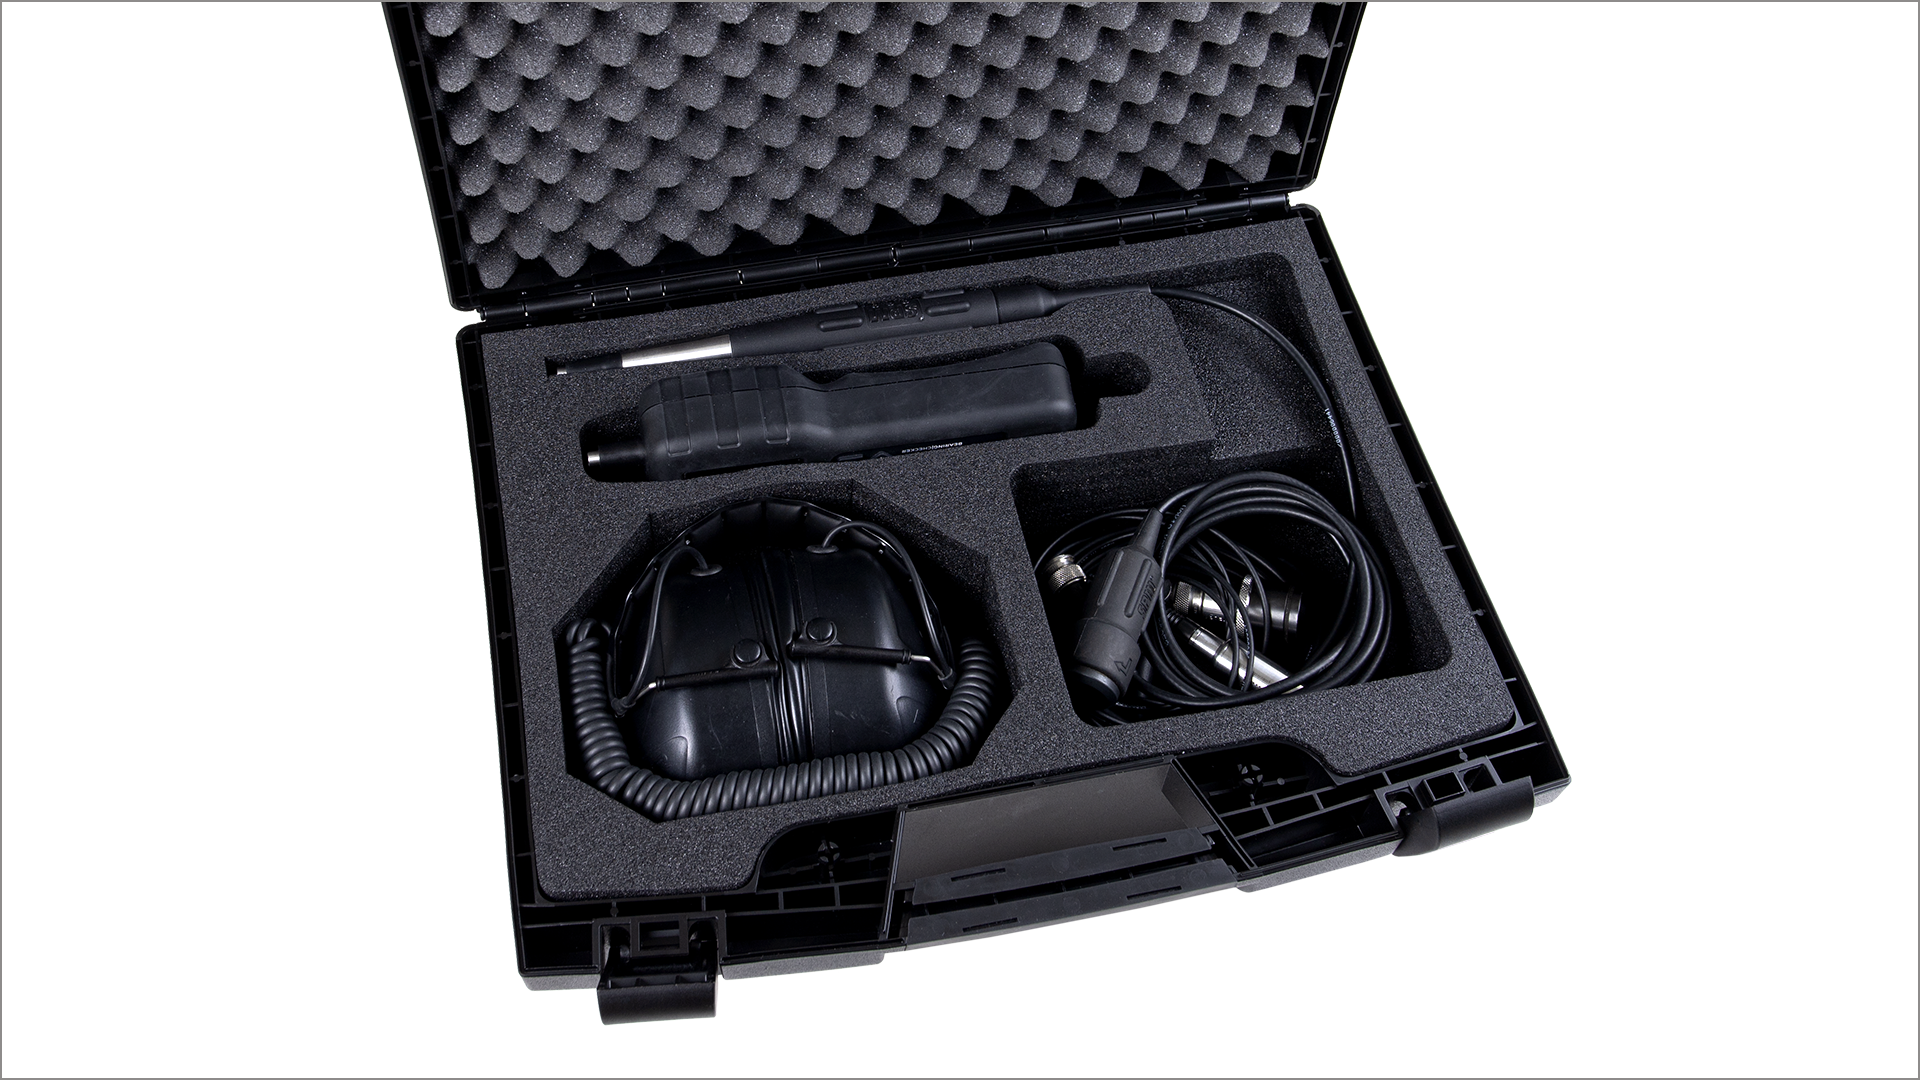 Open carrying case CAS30, including BearingChecker instrument and accessories